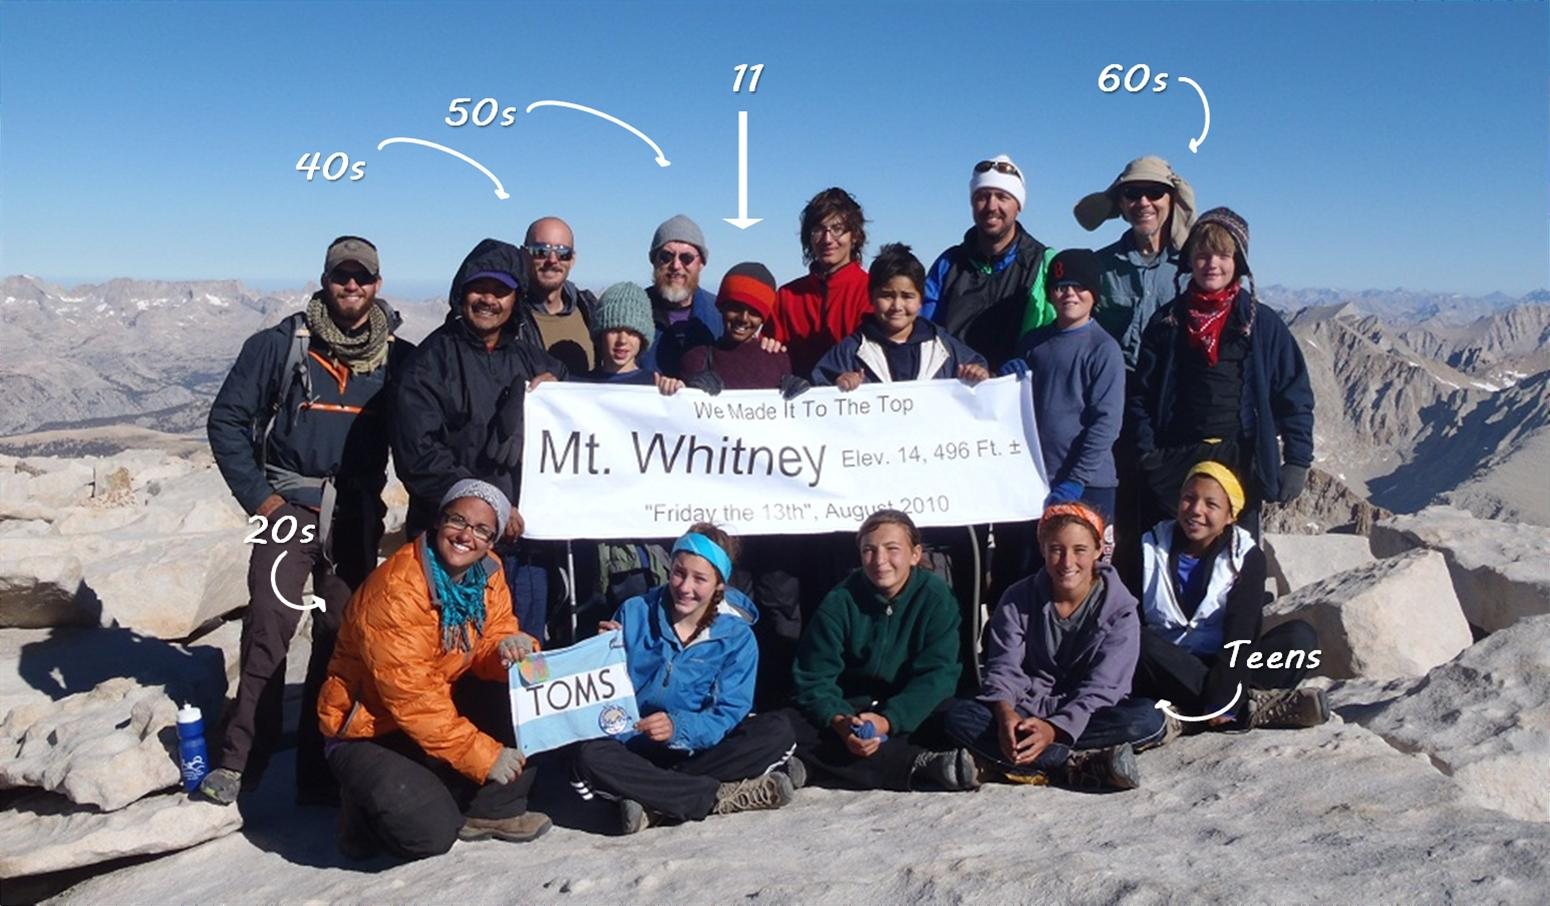 Mt. Whitney summit group photo